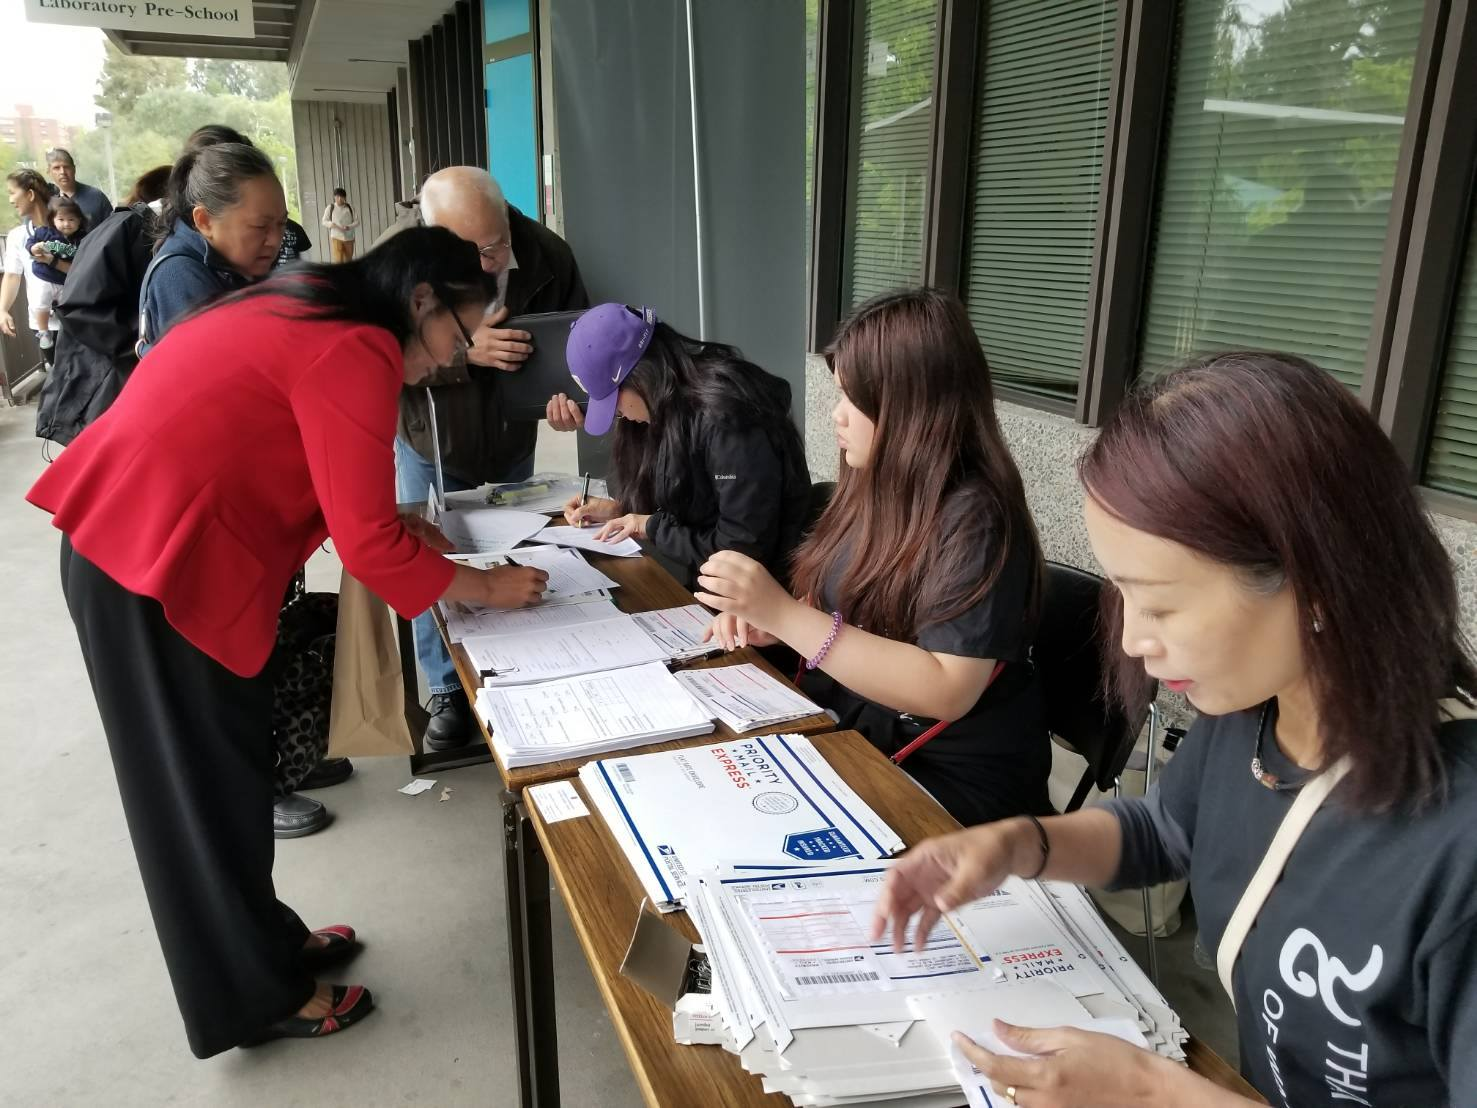 Royal Thai Consulate General - Mobile Consular Services During the Thai Festival Seattle 2017